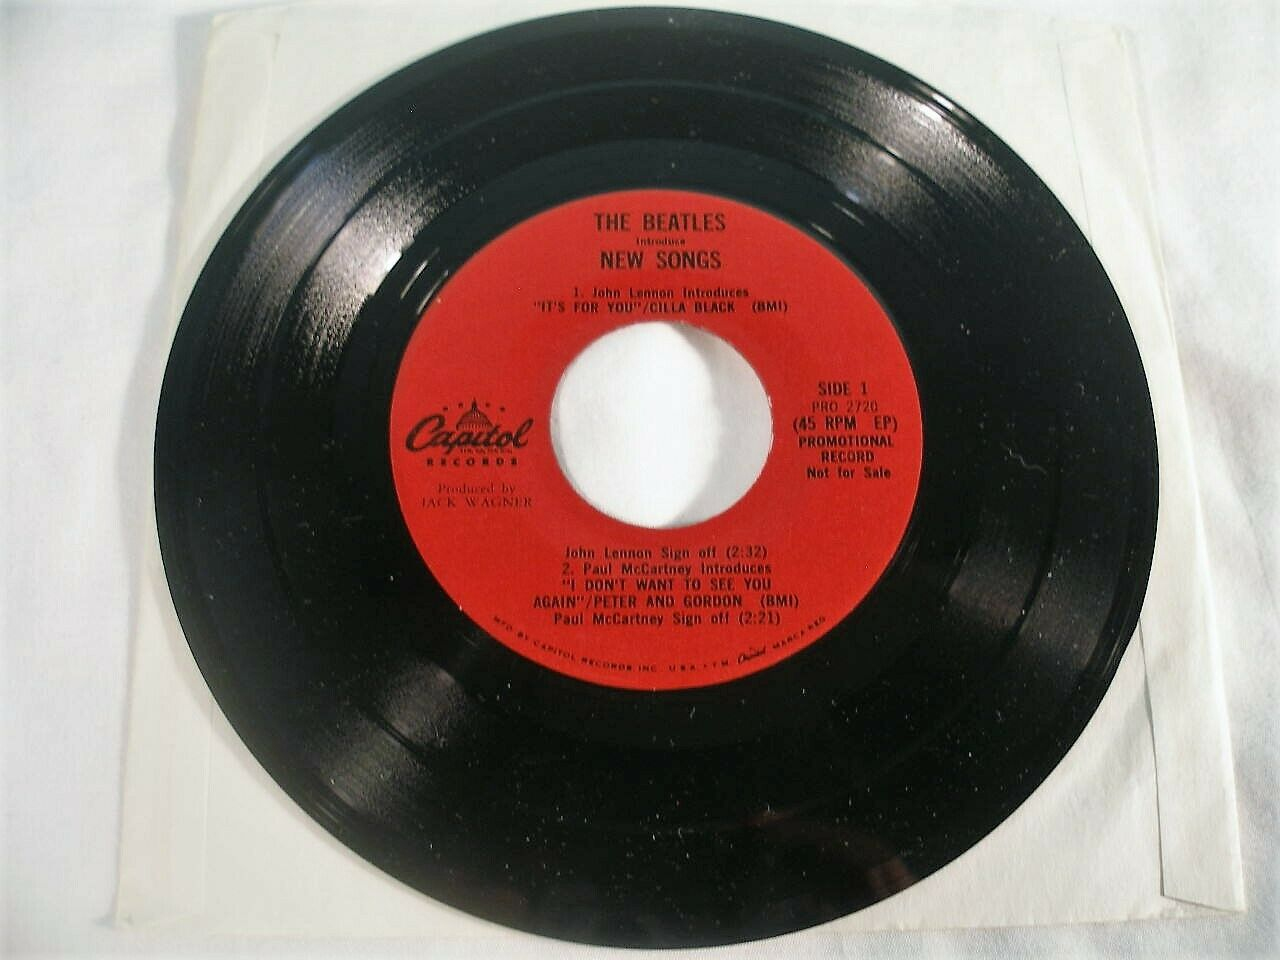 The Beatles Introduce New Songs & Sing Shout, 7 Inch Vinyl Promo Record, Capitol